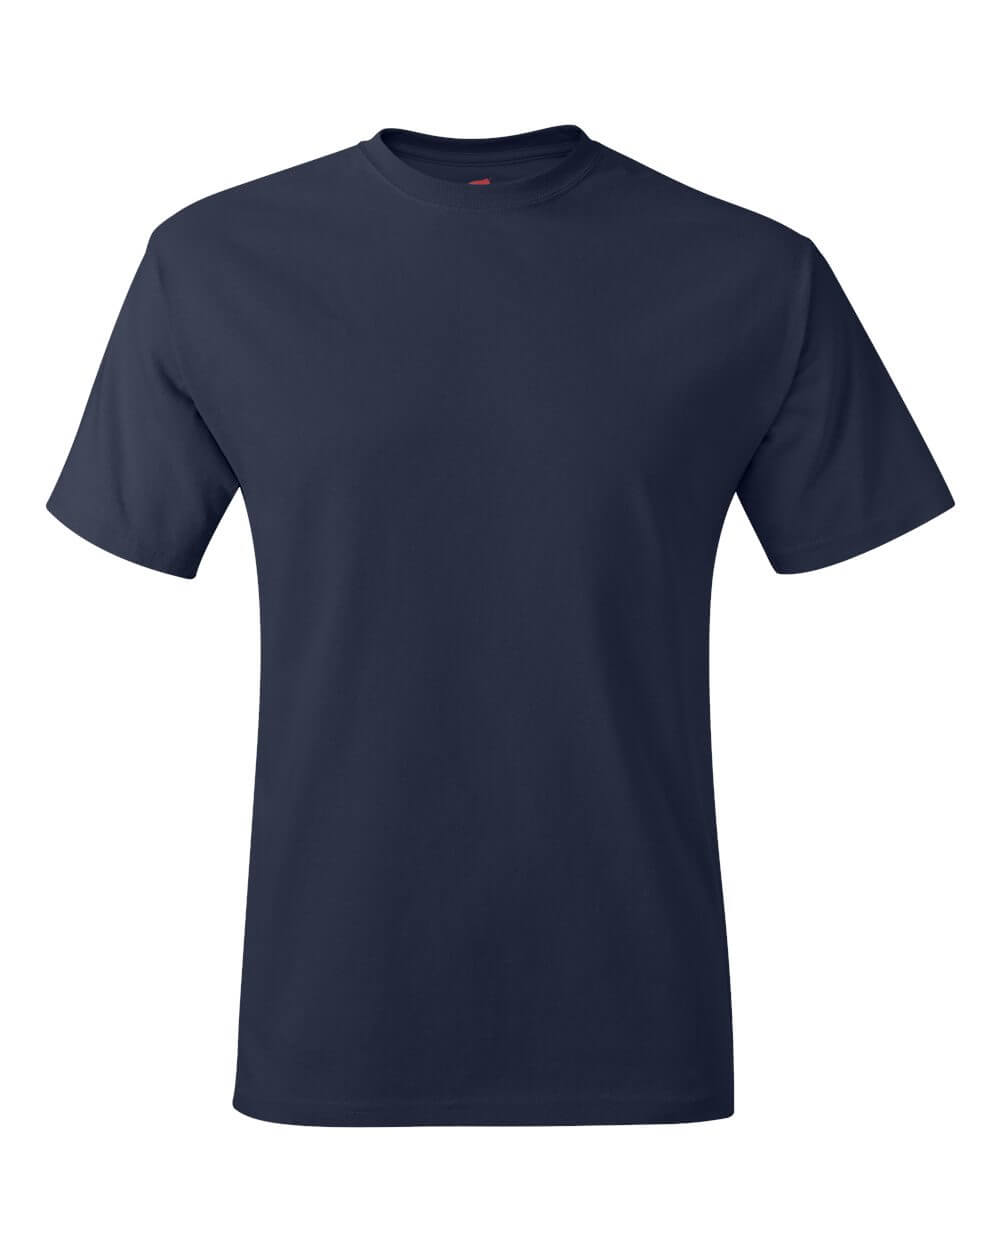 Hanes_5250_Navy Blue Custom T Shirts